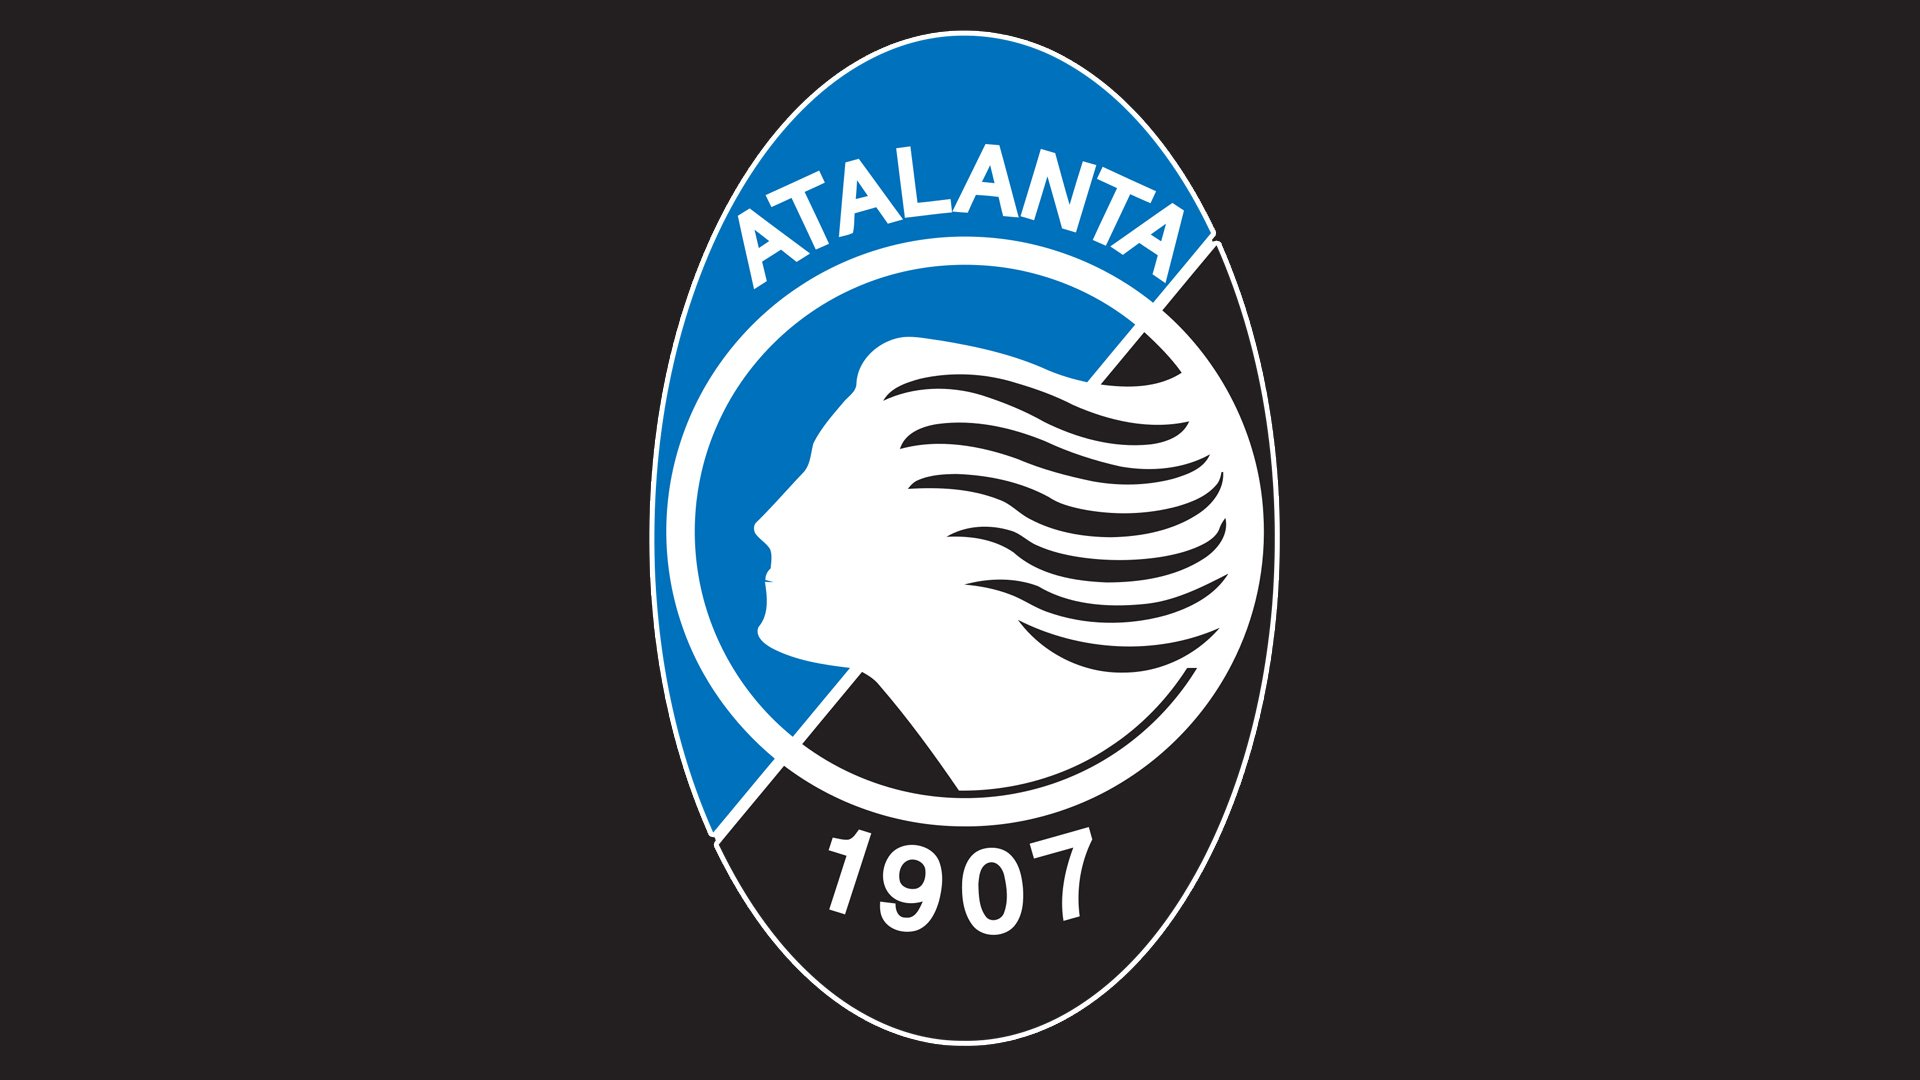 atalanta logo and symbol meaning history png atalanta logo and symbol meaning